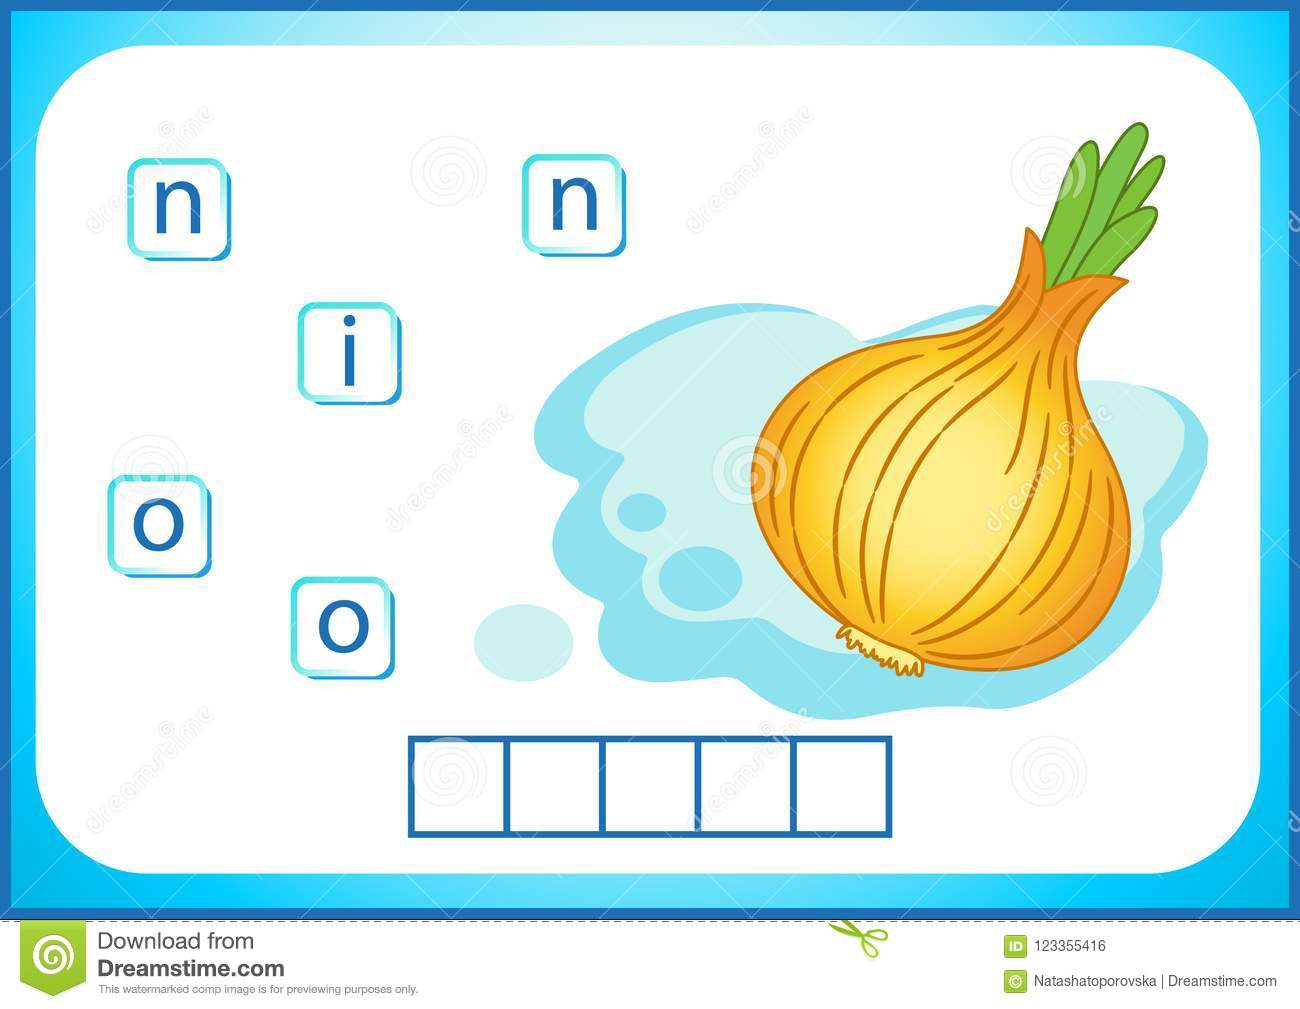 School Education English Flashcard For Learning English We Write The Names Of Vegetables And